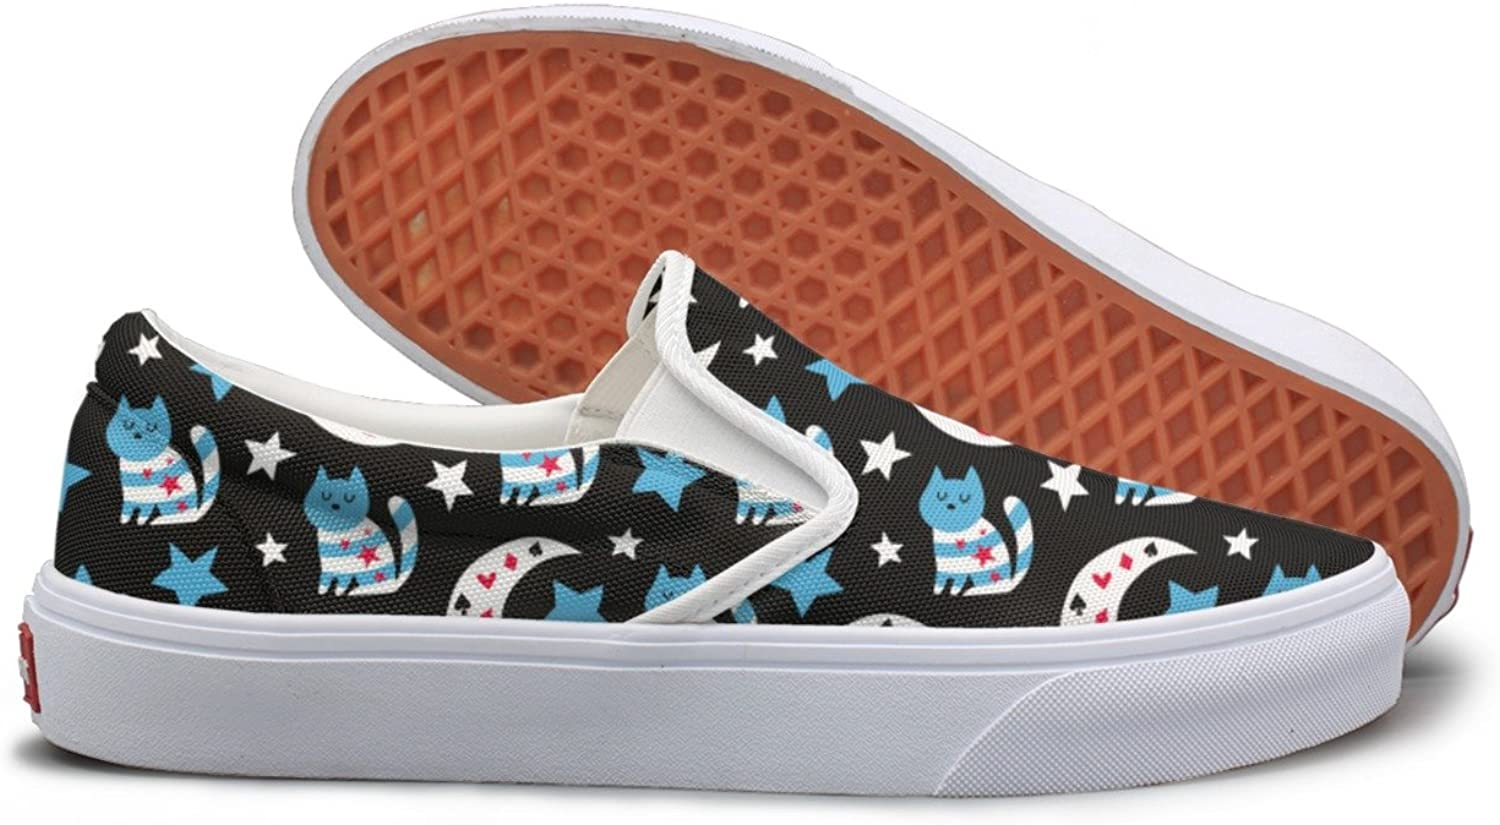 SEERTED Sleeping Cat and Stars Casual Sneakers for Women Slip On